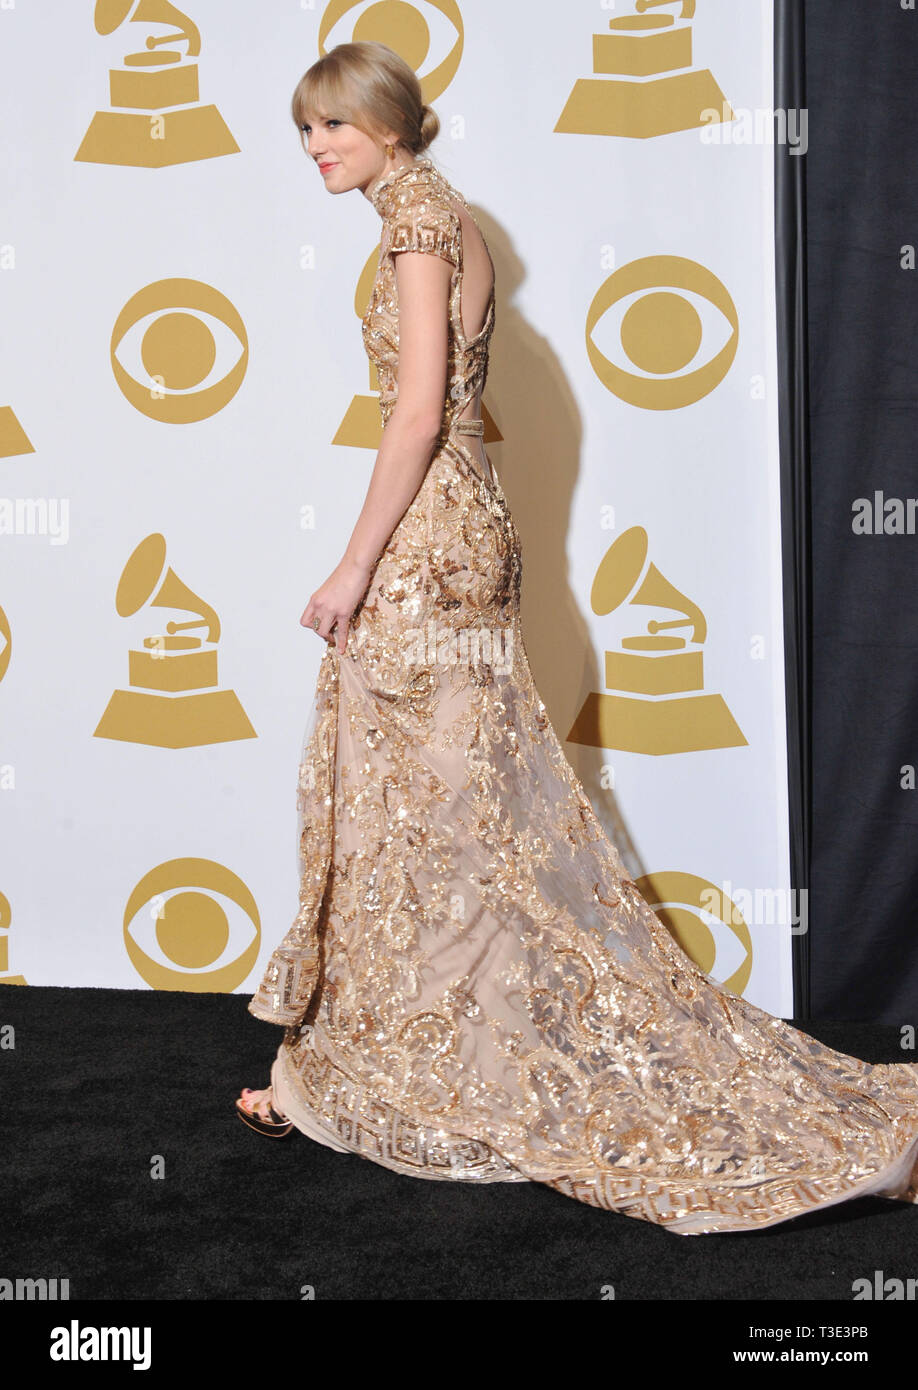 Taylor Swift At The 54th Annual Grammy Awards 2012 Press Room At The Staples Center In